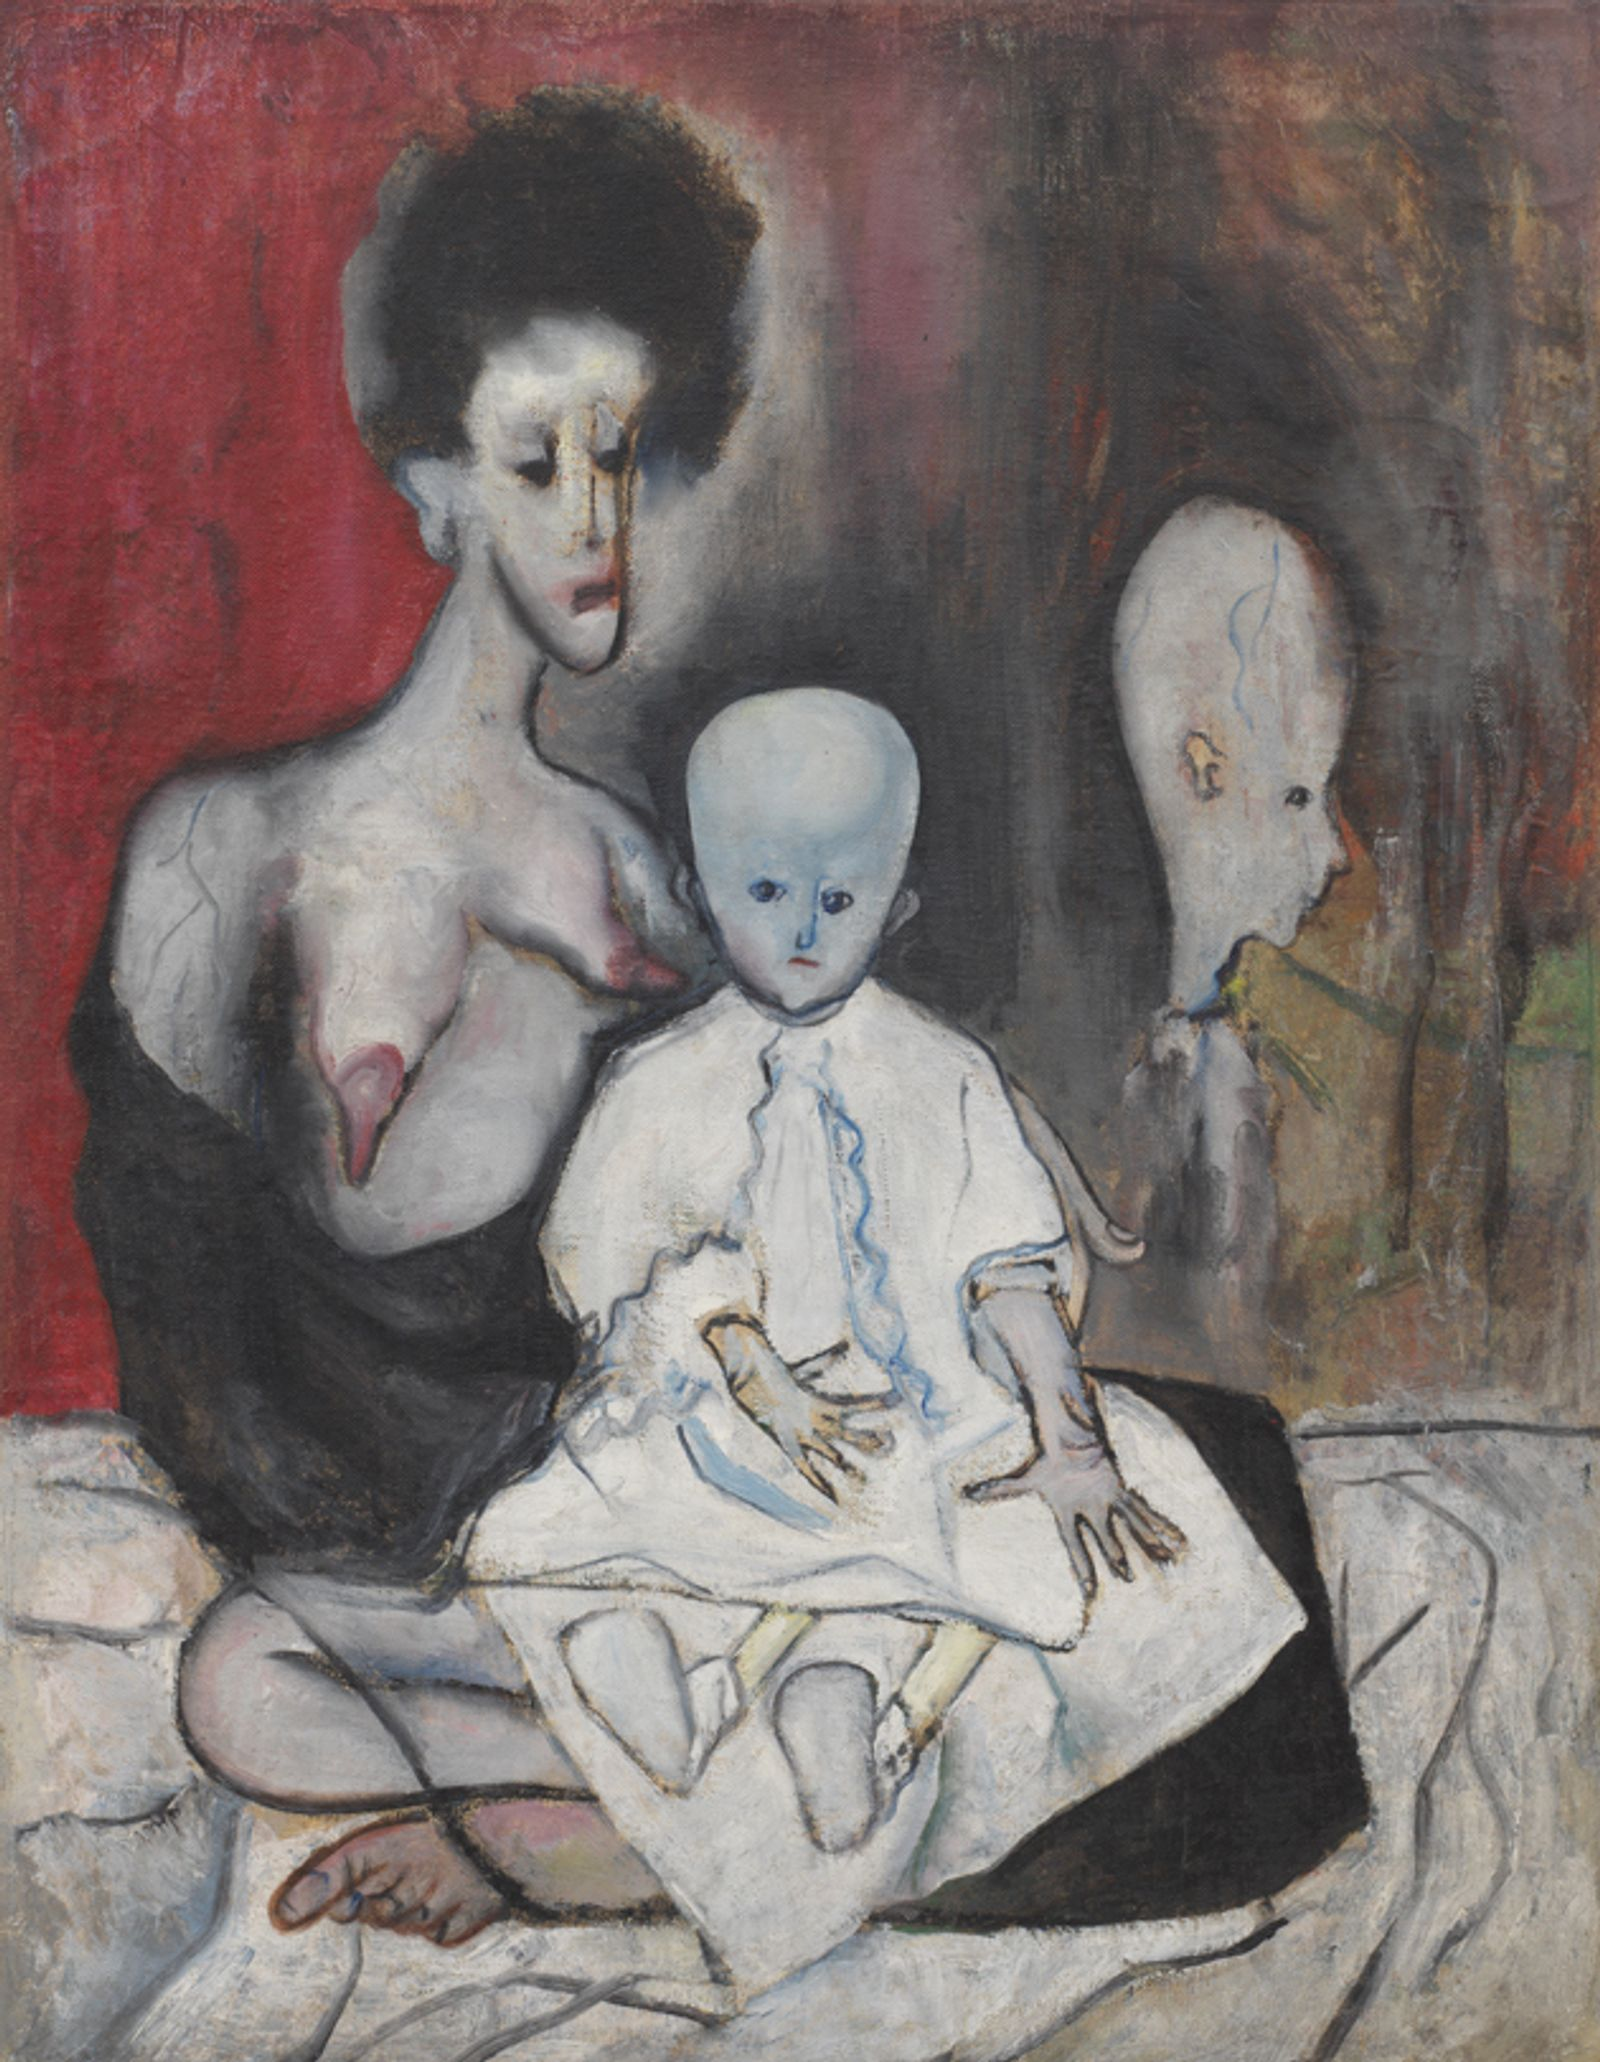 A black-haired woman with long, drooping facial features and topless with drooping, pointed breasts holds a bald, alien-like child, with another child hovering behind it.